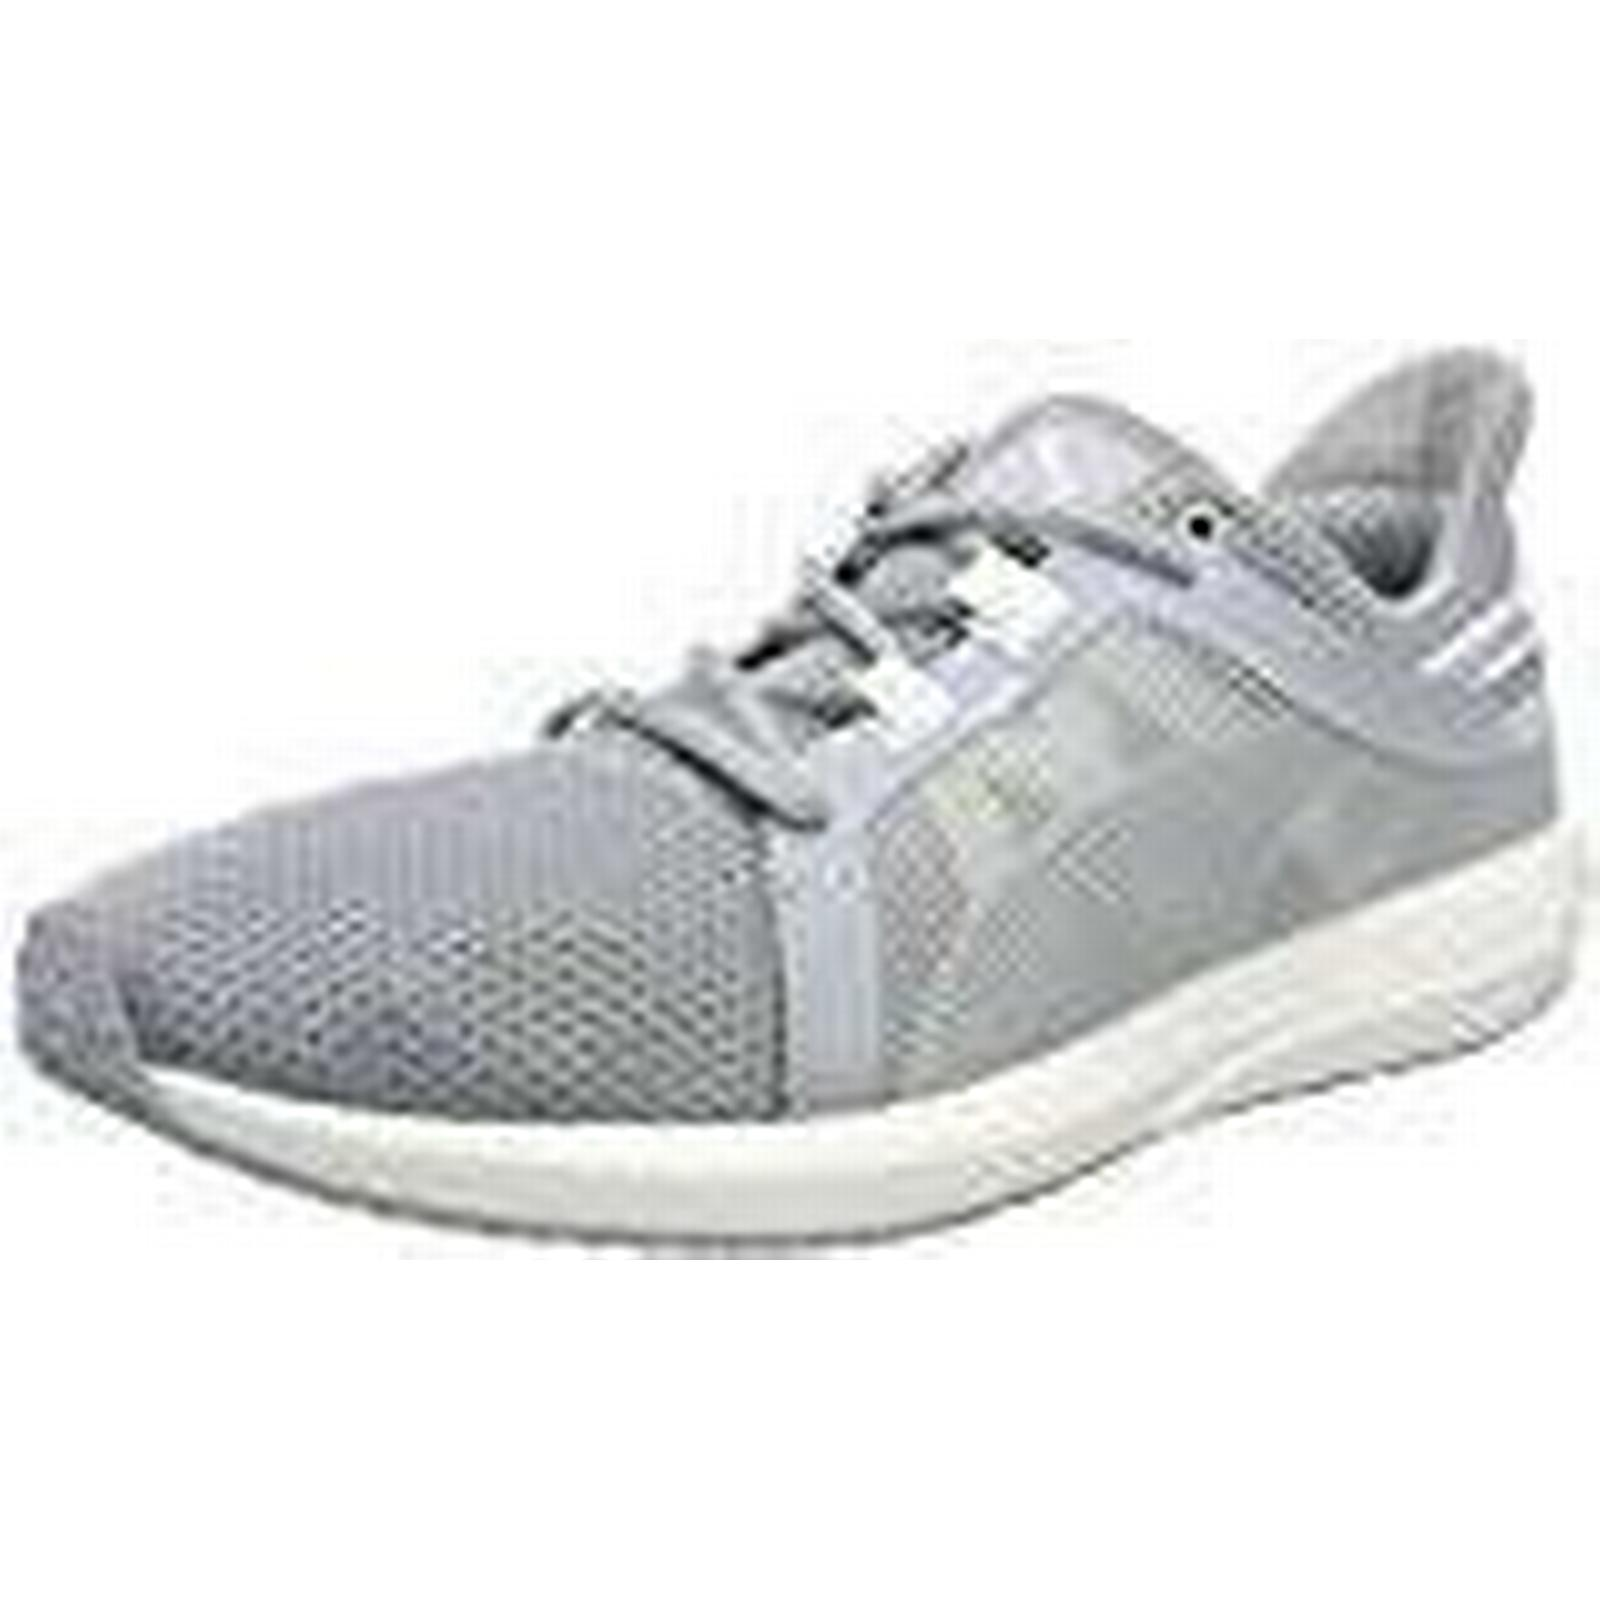 Puma Women's Mega NRGY Turbo 2 WNS Cross Trainers, Quarry UK White, 7.5 UK 7.5 UK Quarry ec9a4c